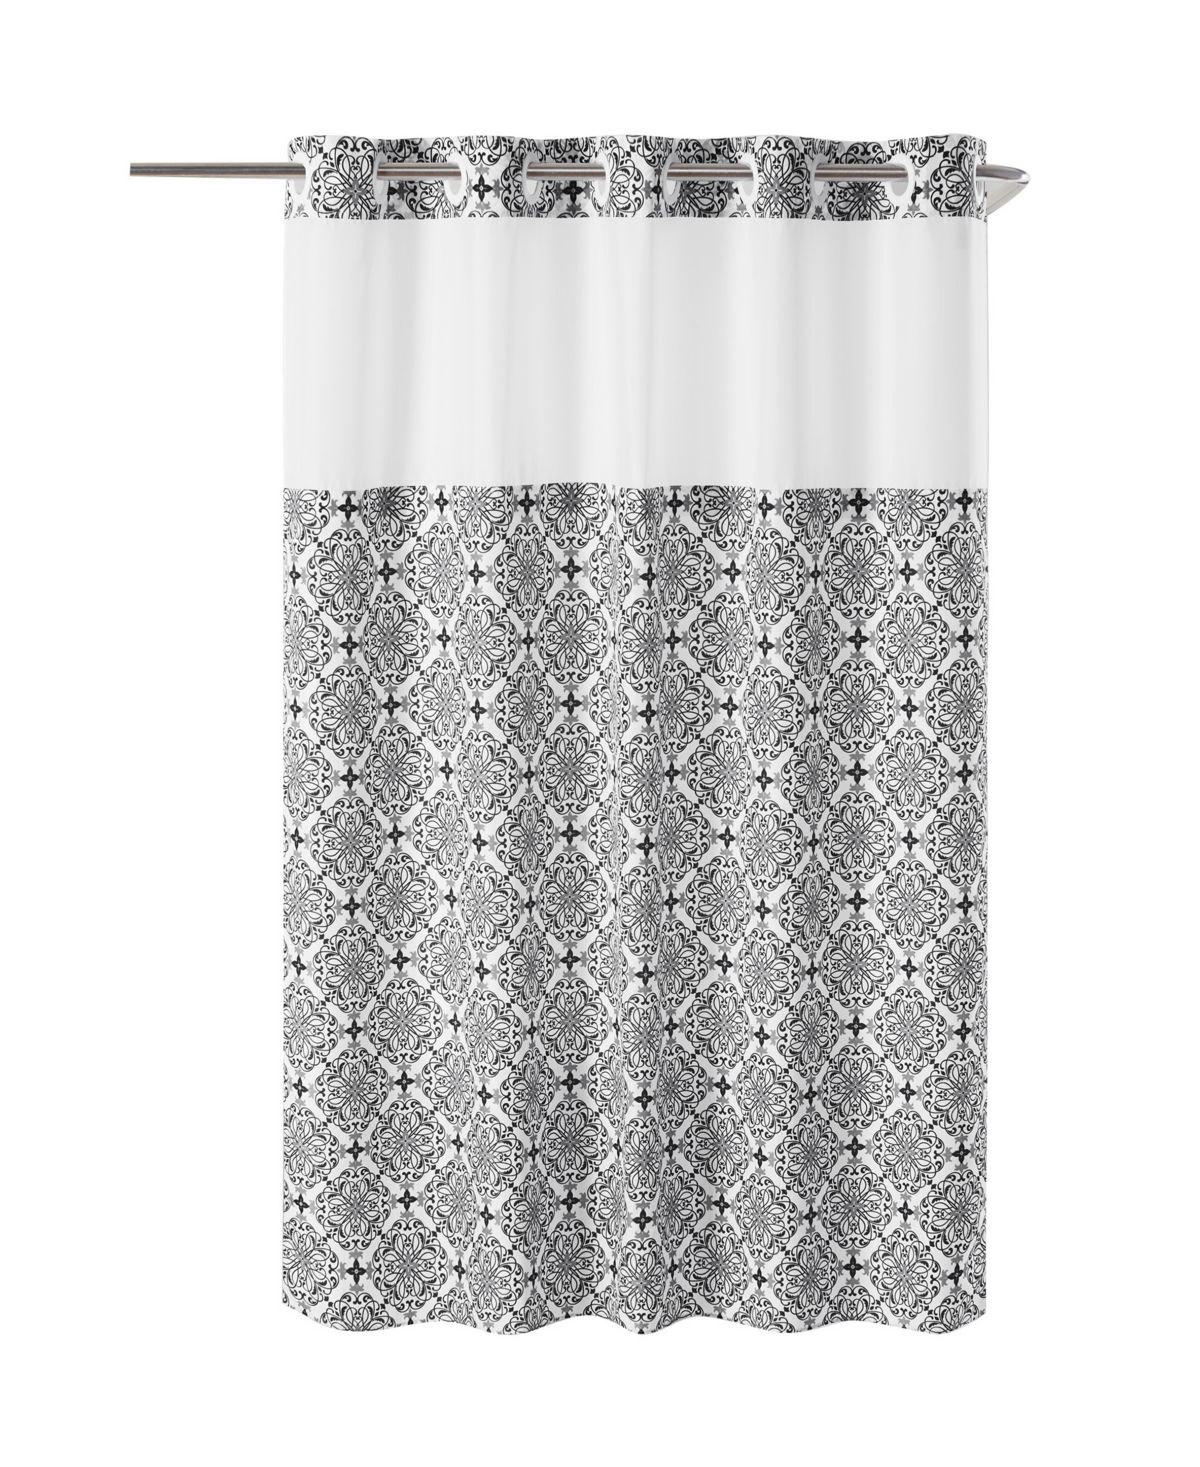 Hookless Vervain Shower Curtain Reviews Shower Curtains Bed Bath Macy S Curtains Baby Room Lighting Hookless Shower Curtain